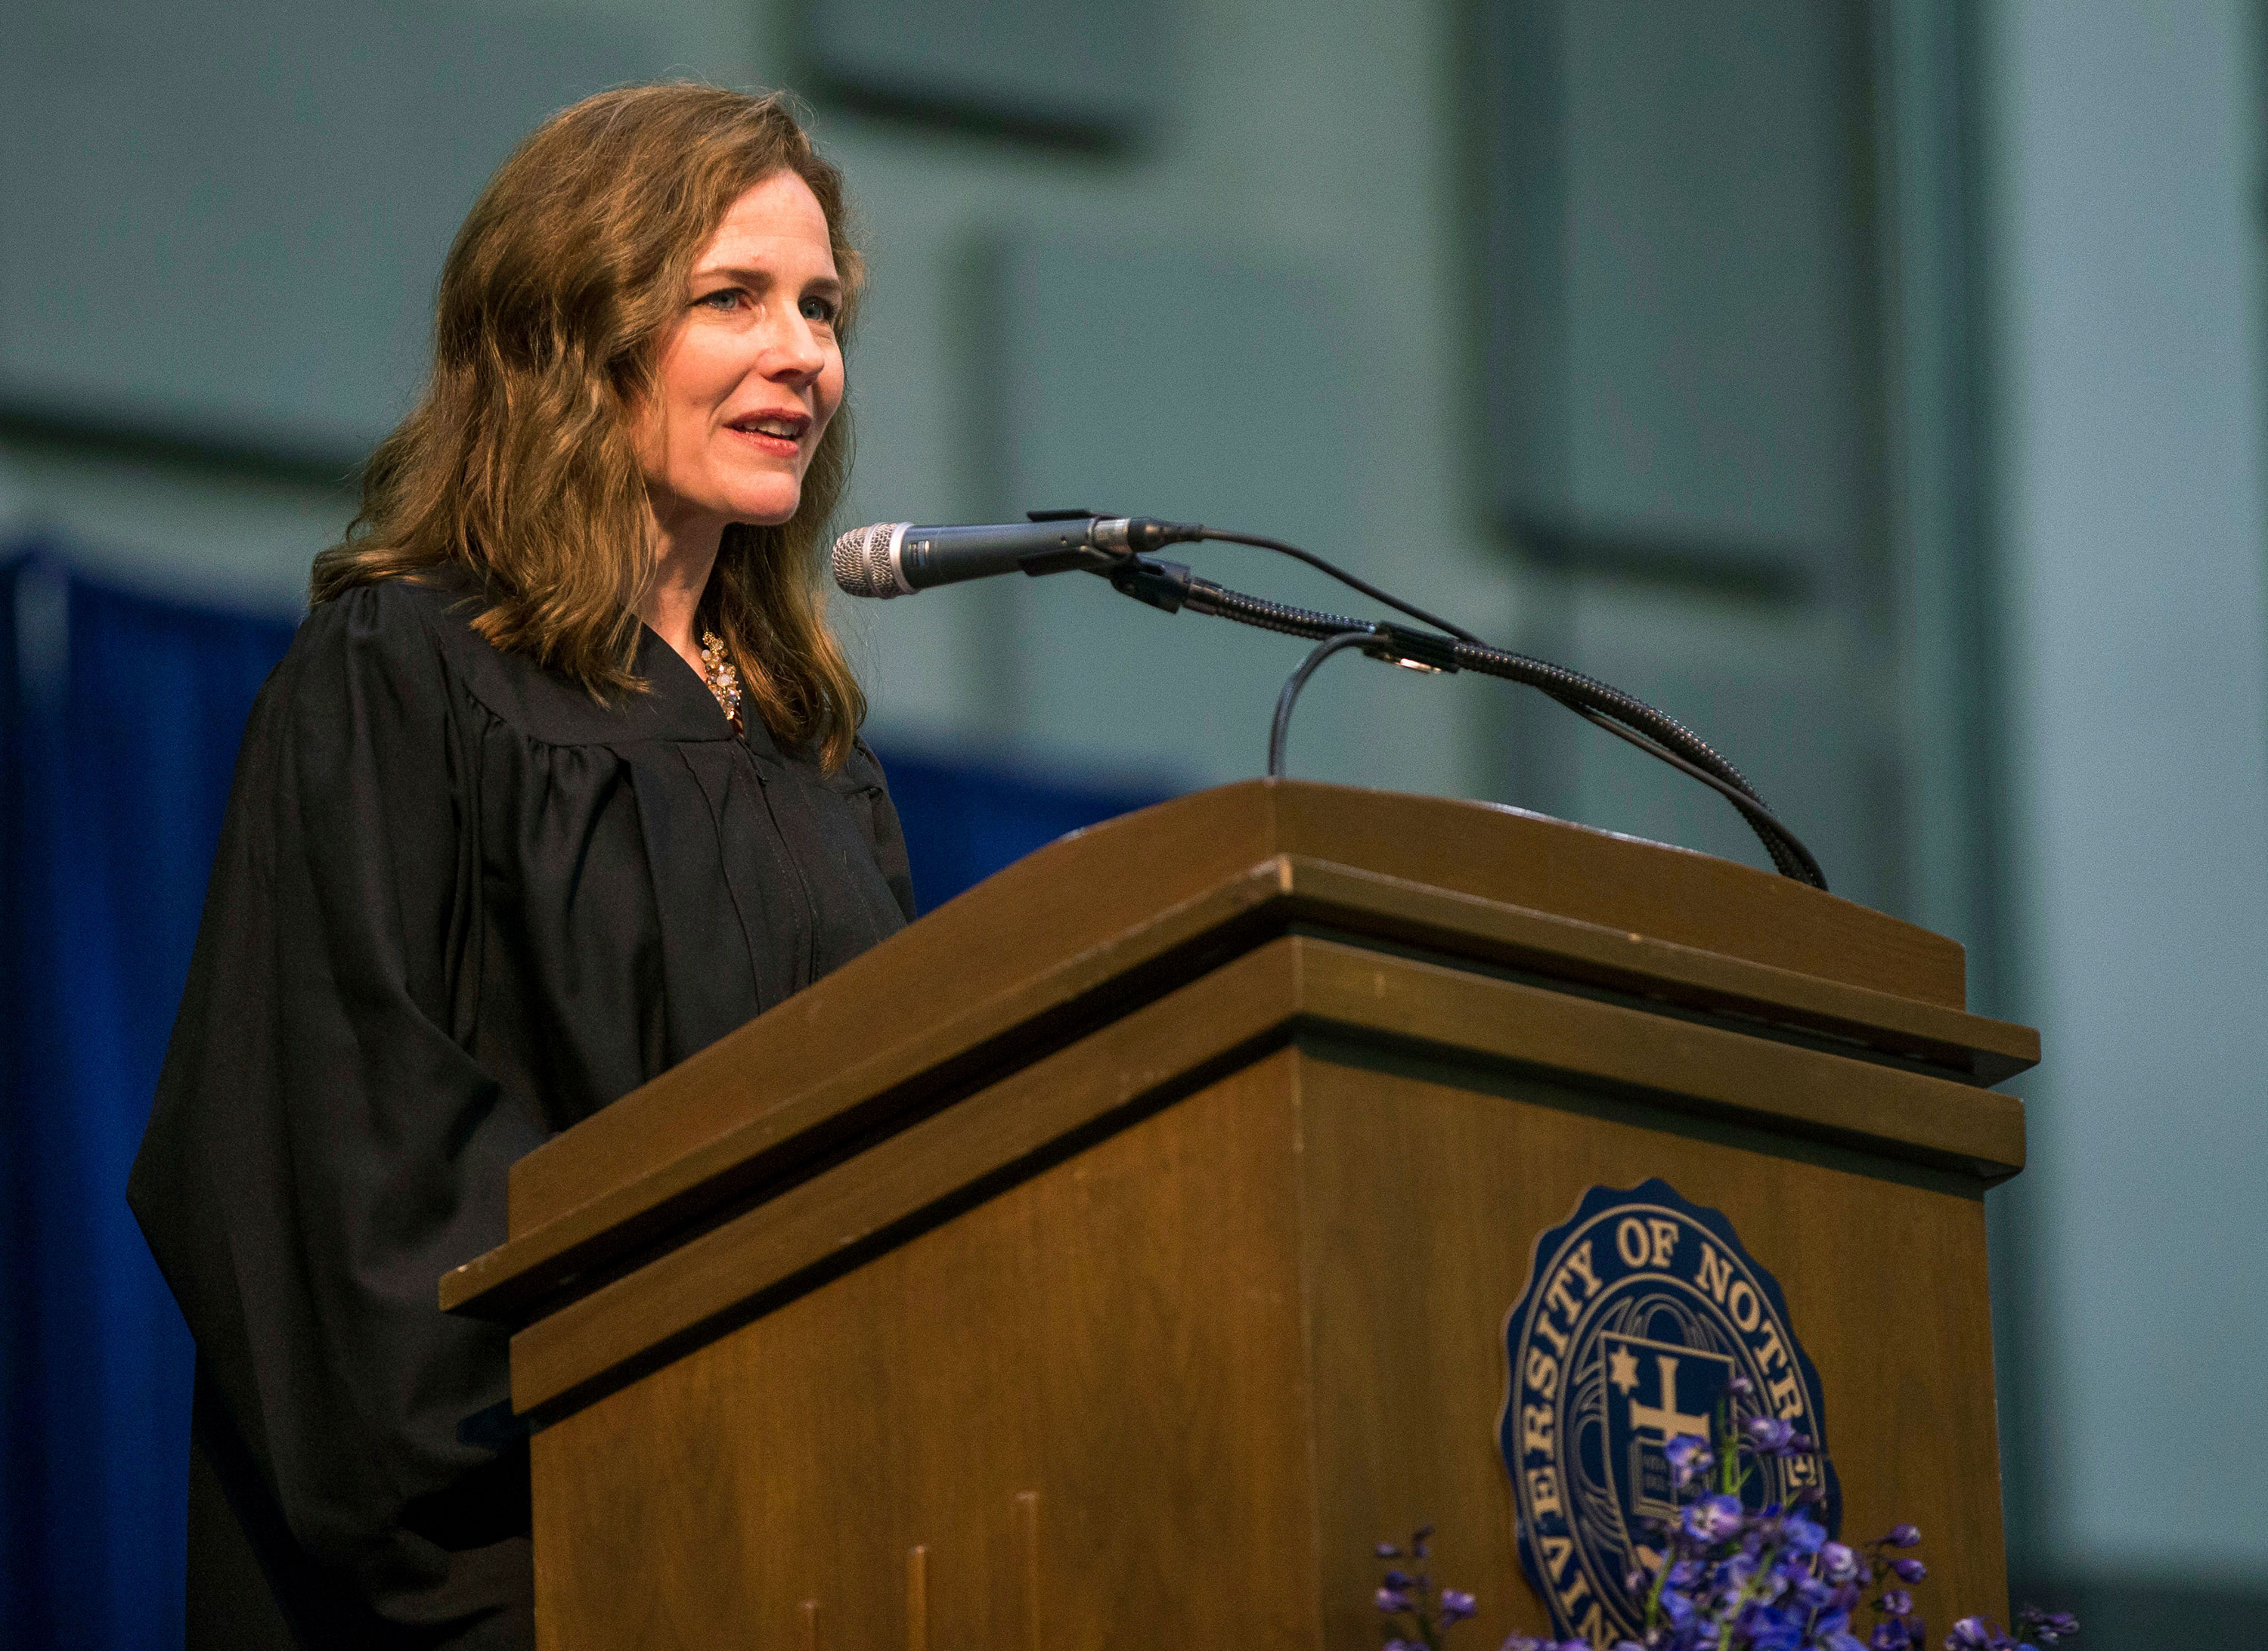 Amy Coney Barrett speaks in May 2018 at the University of Notre Dame's Law School commencement ceremony in South Bend, Indiana.